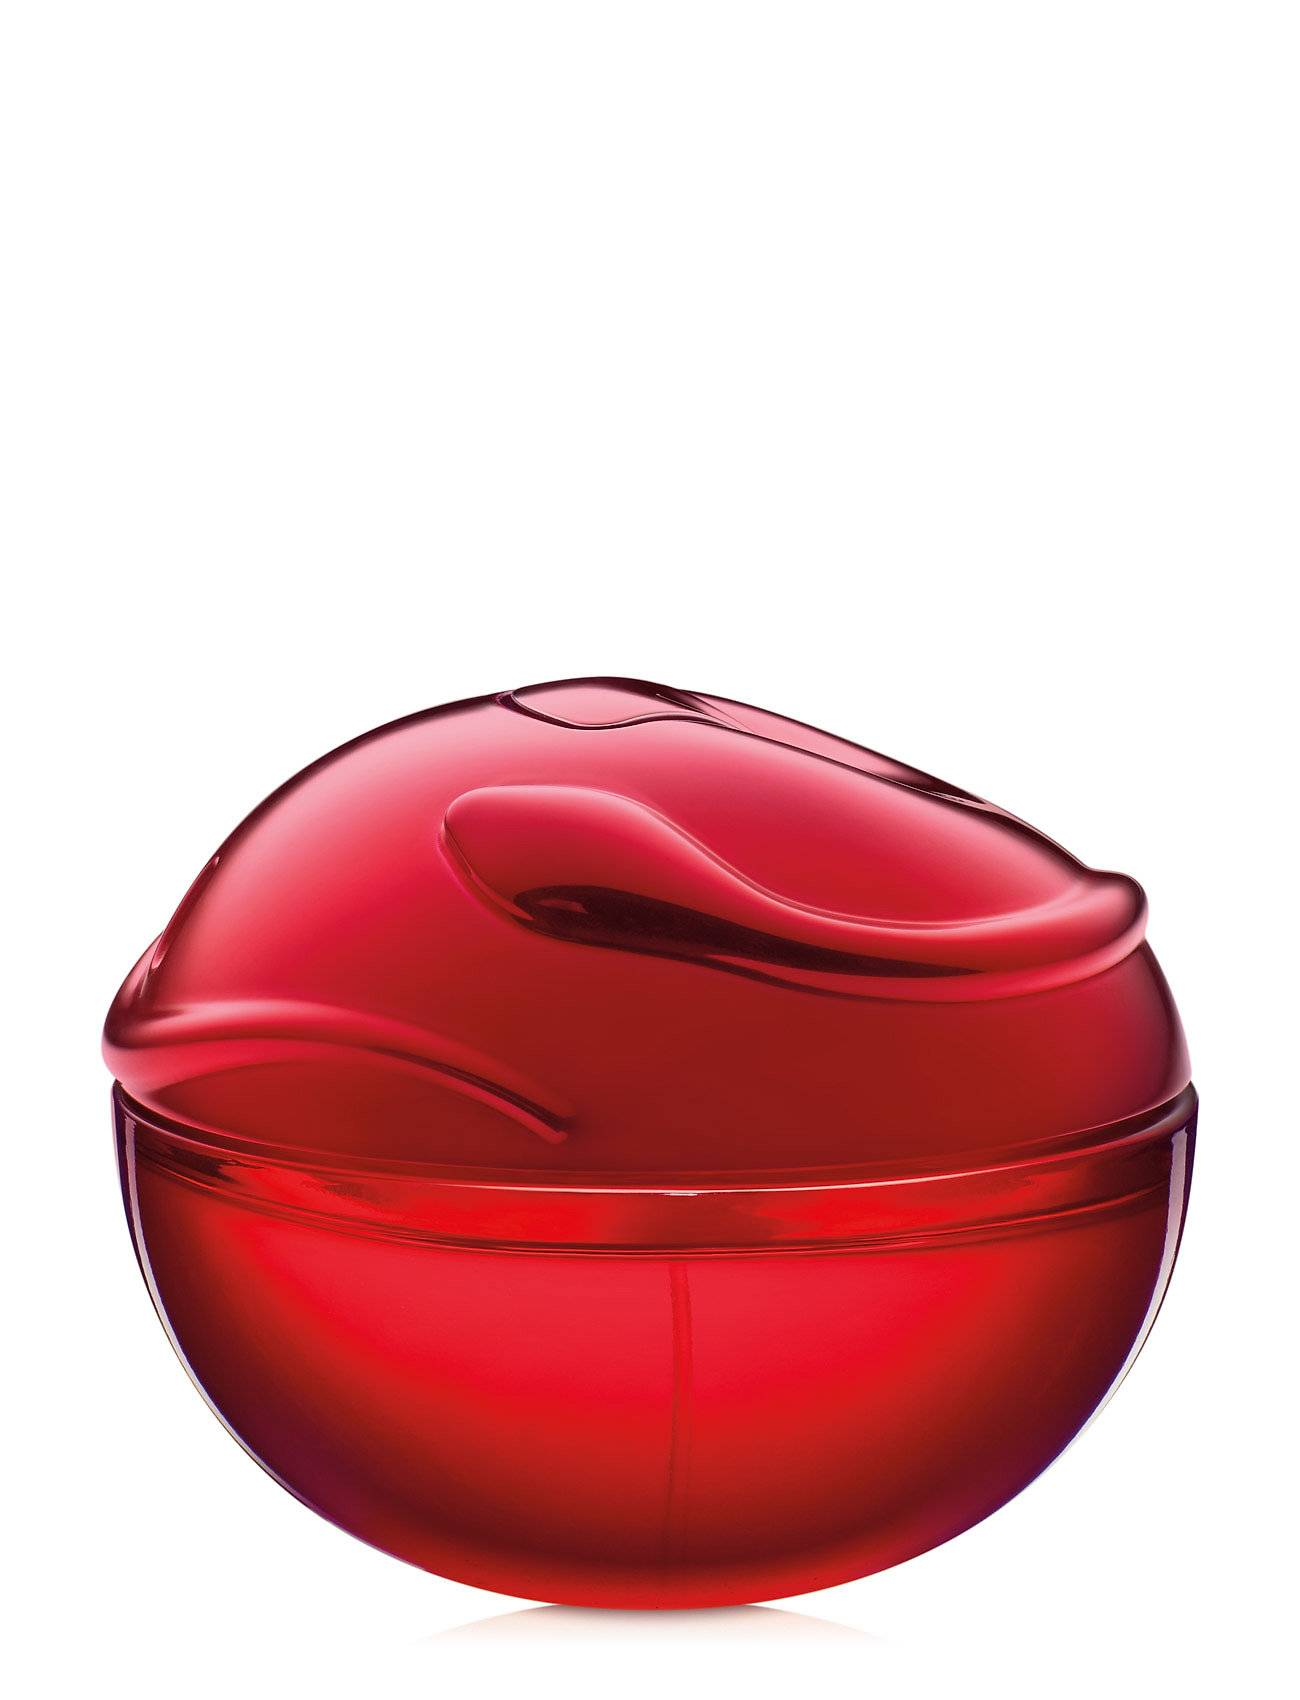 Donna Karan/DKNY Fragrance Be Tempted Eau De Parfum